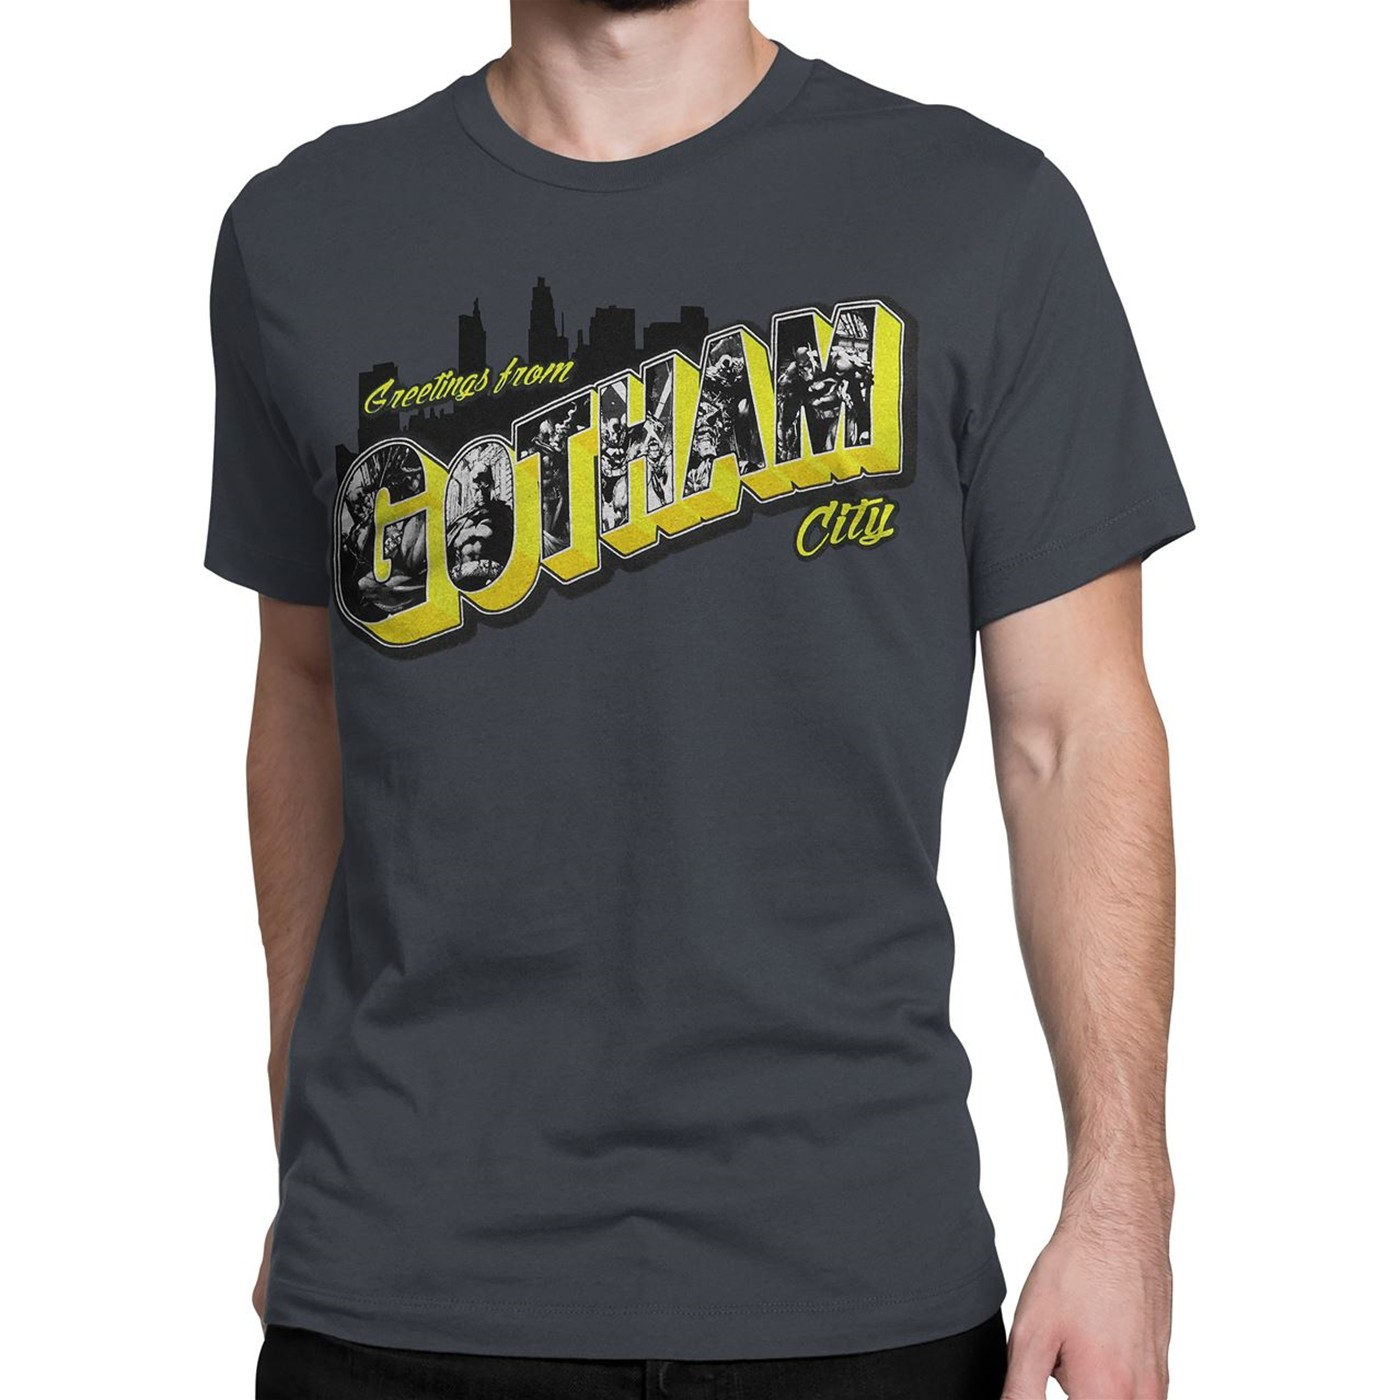 Batman Greetings from Gotham City Men's T-Shirt